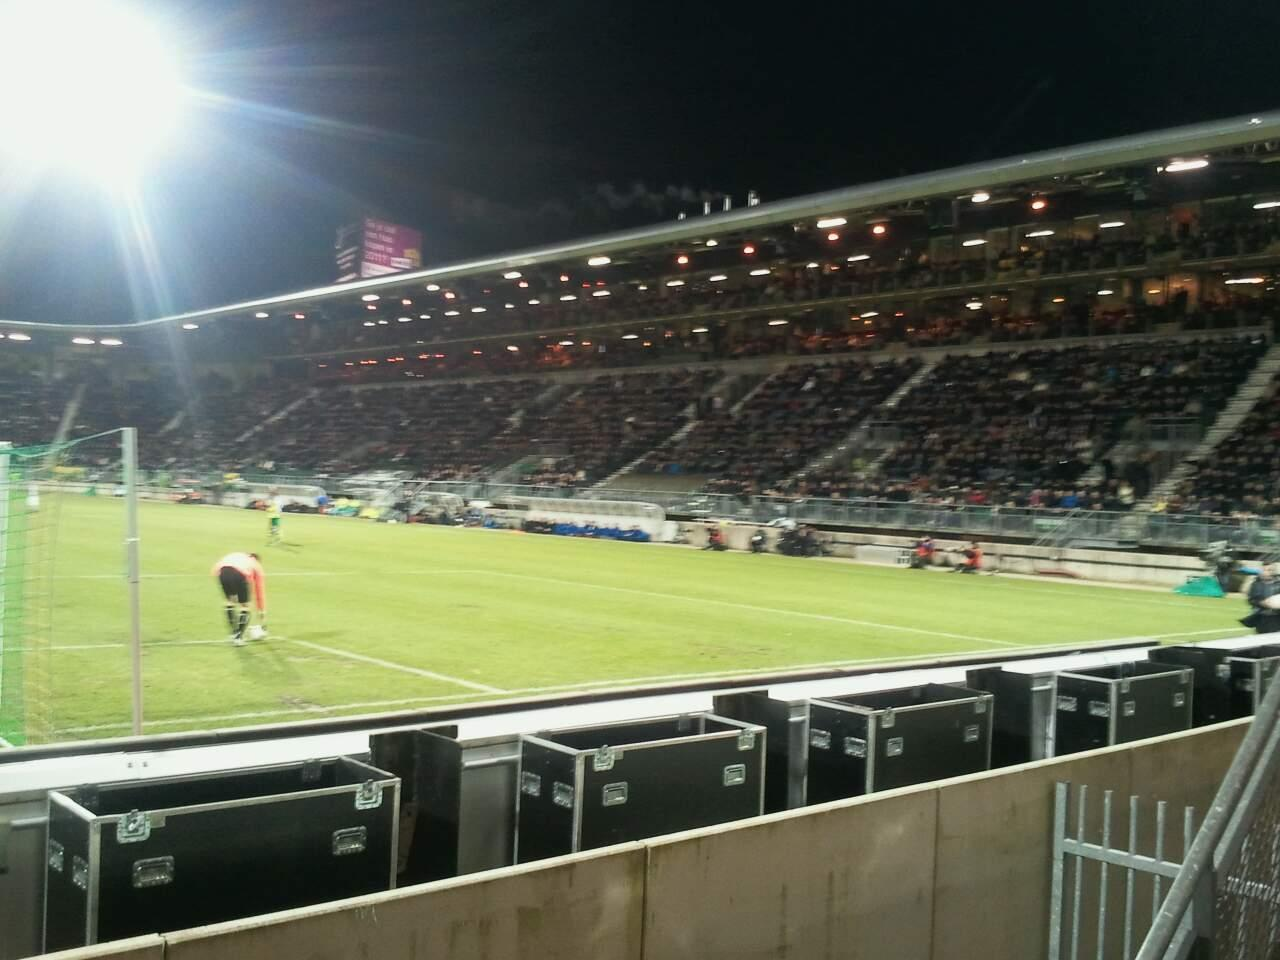 Cars Jeans Stadion Section vak-W Row 1 Seat 6